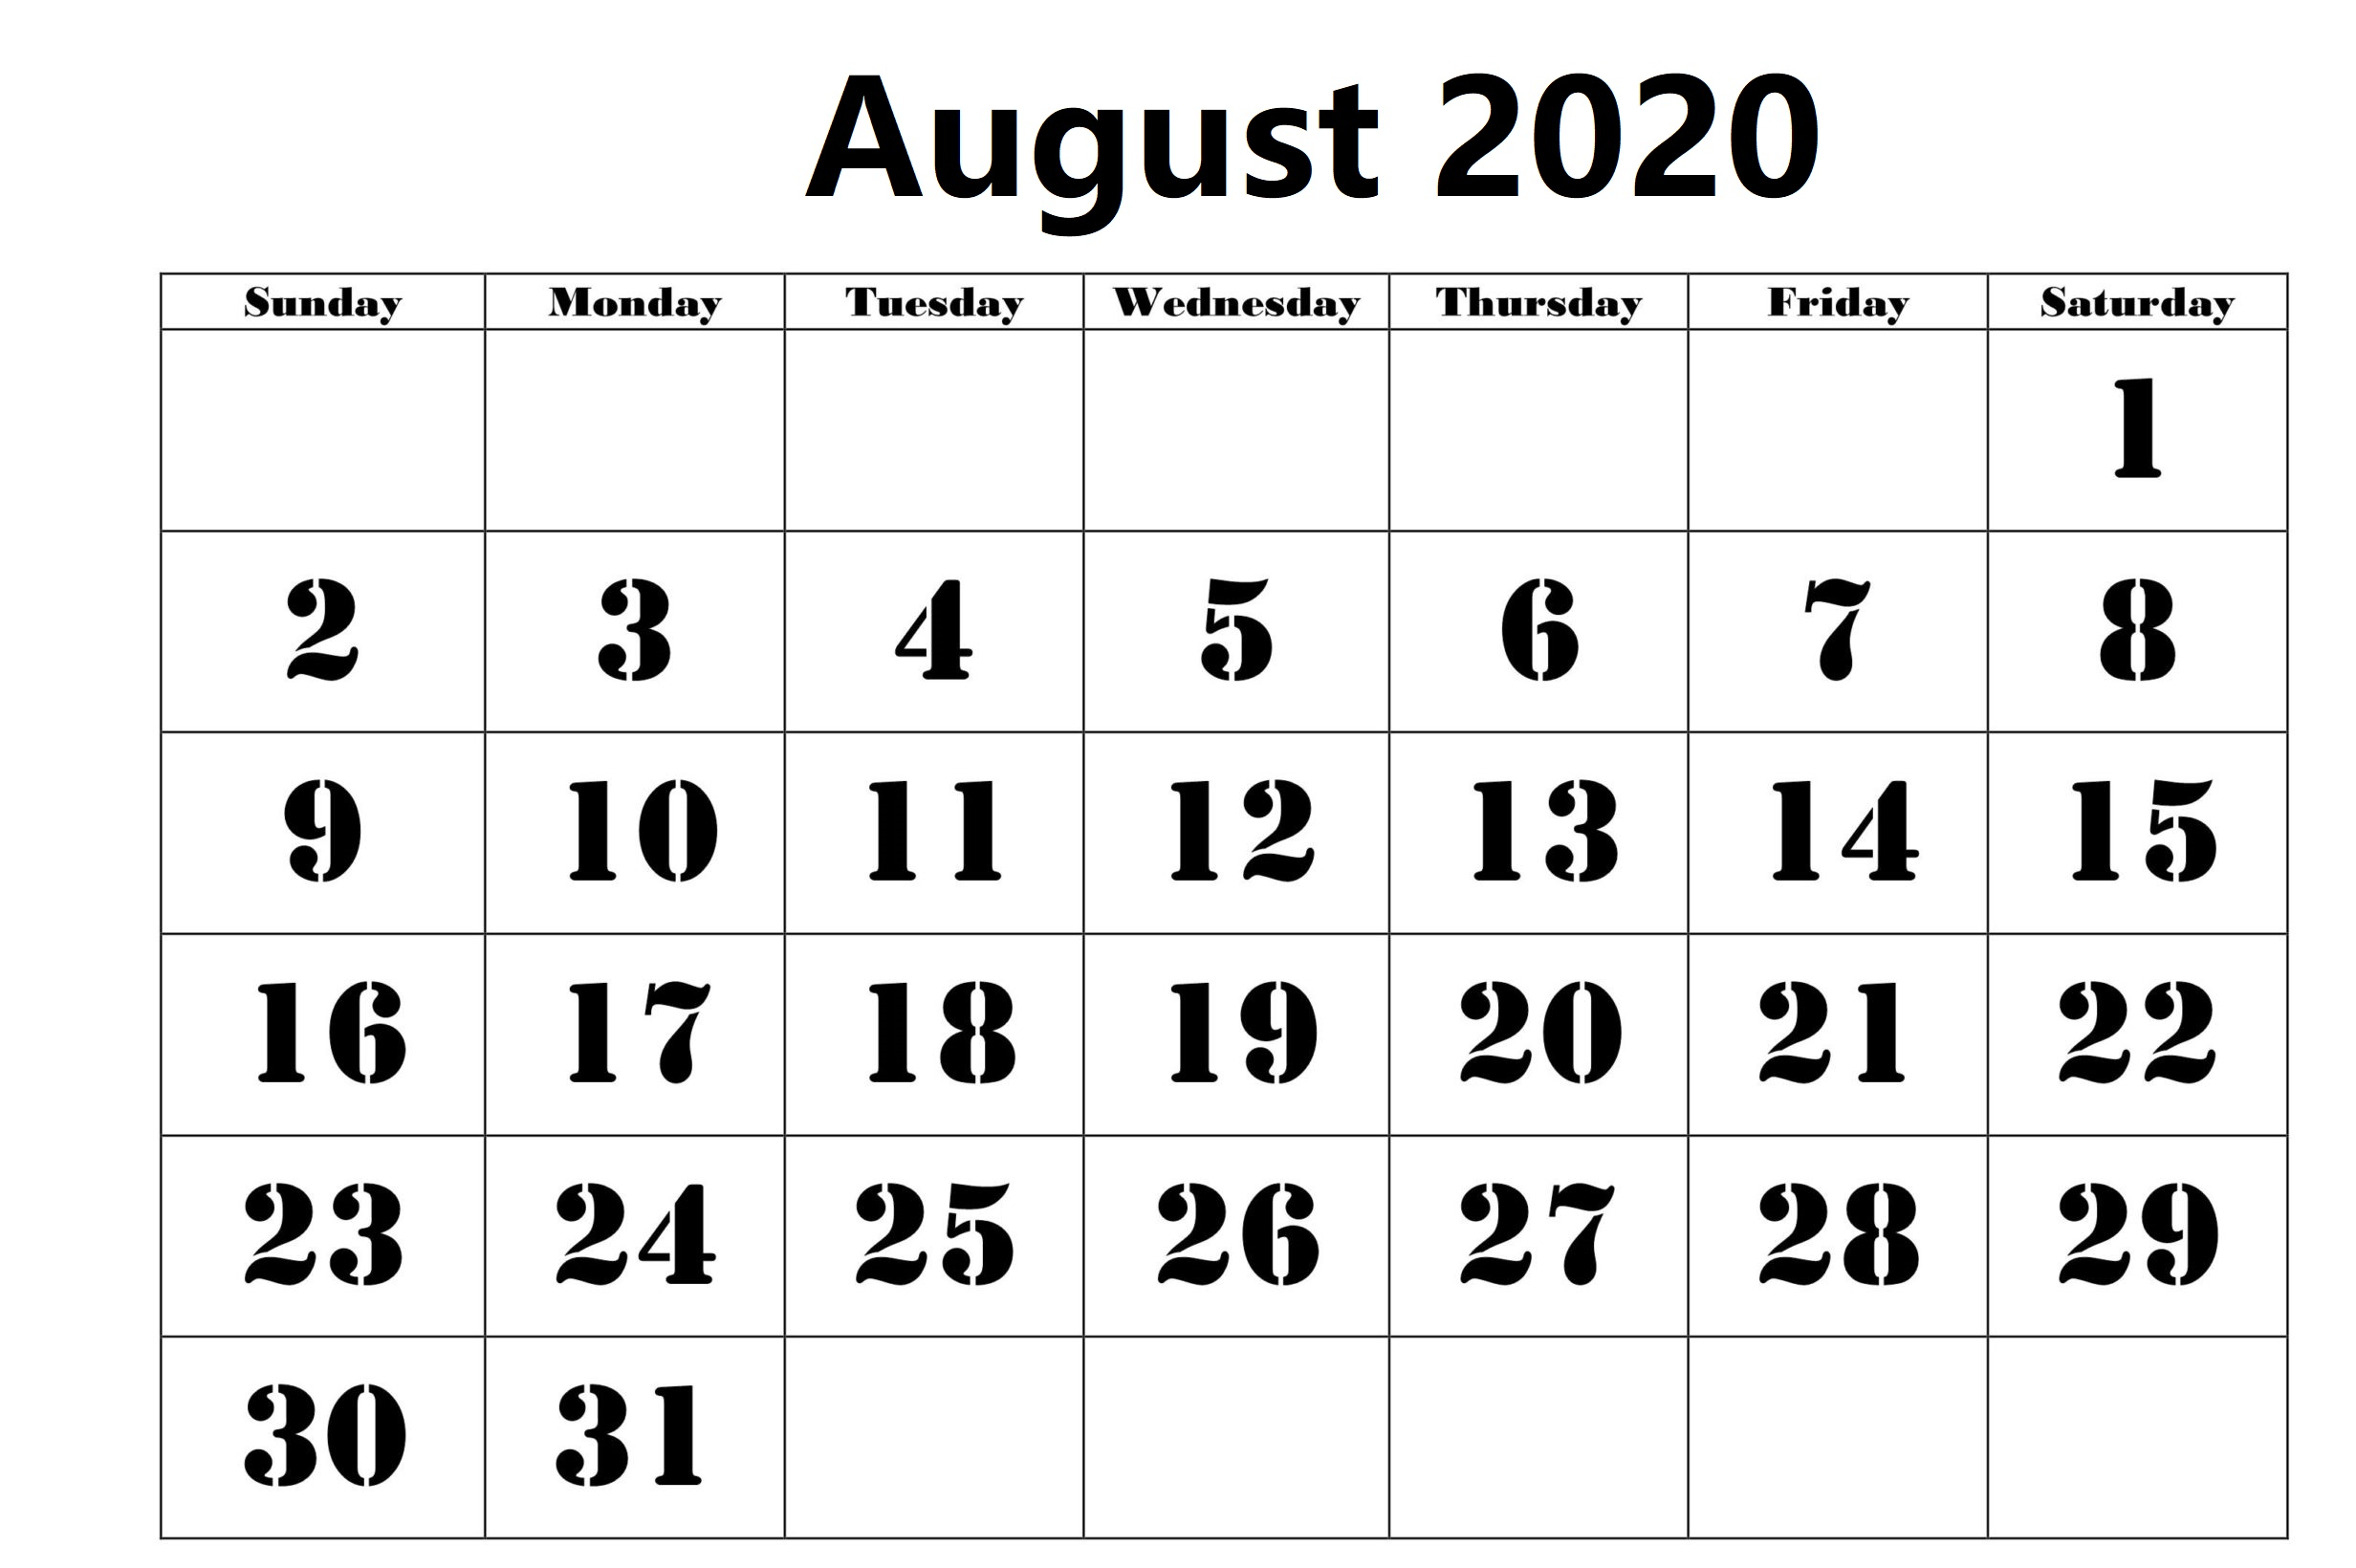 Blank August 2020 Calendar With Holidays